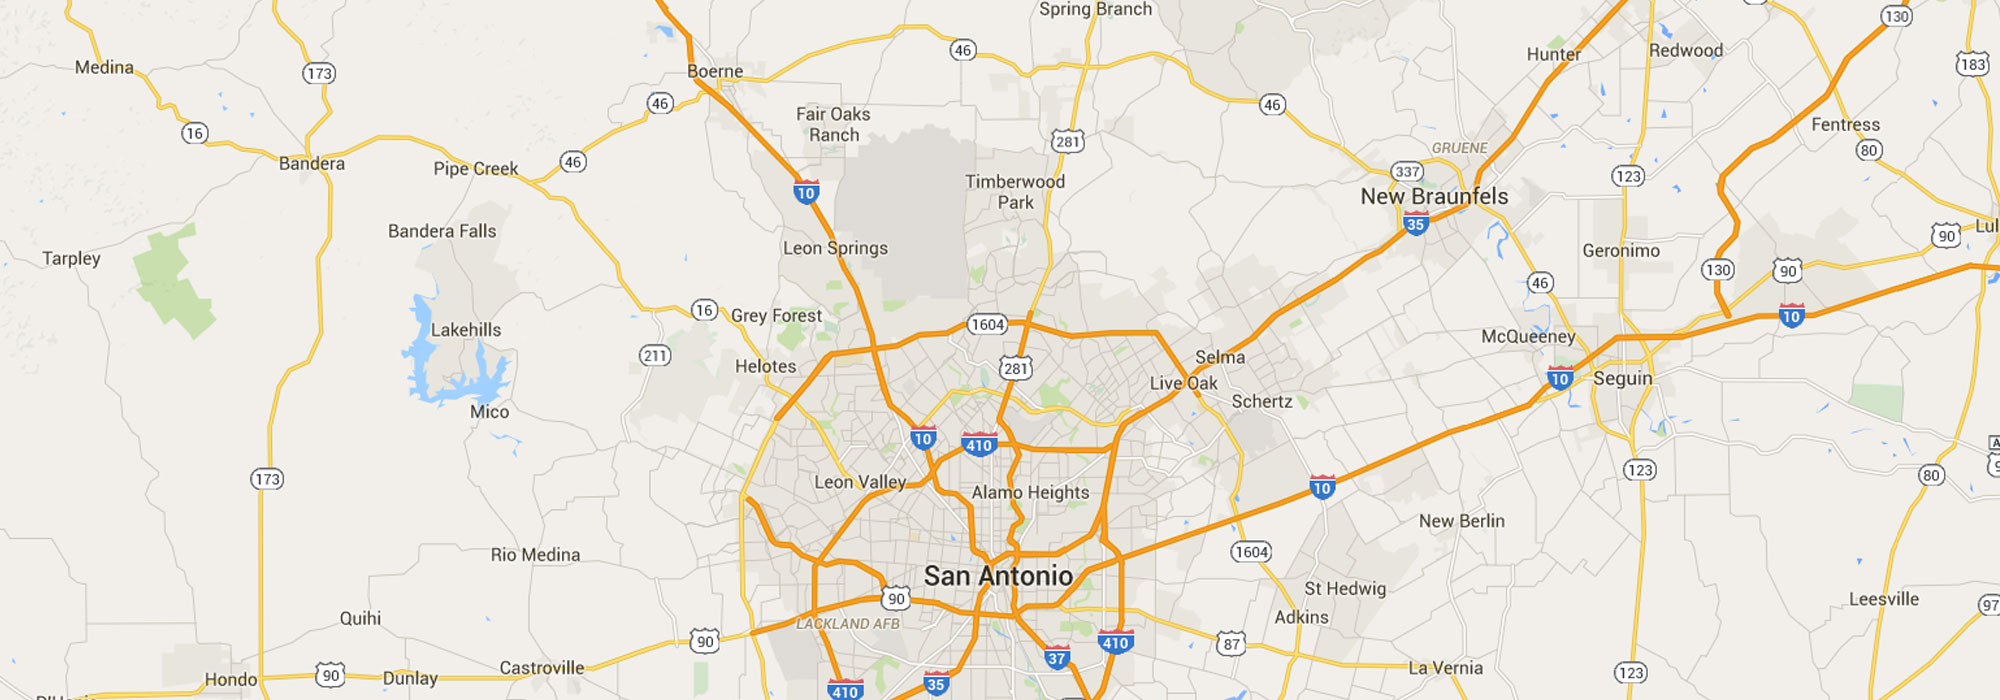 San Antonio HVAC Map